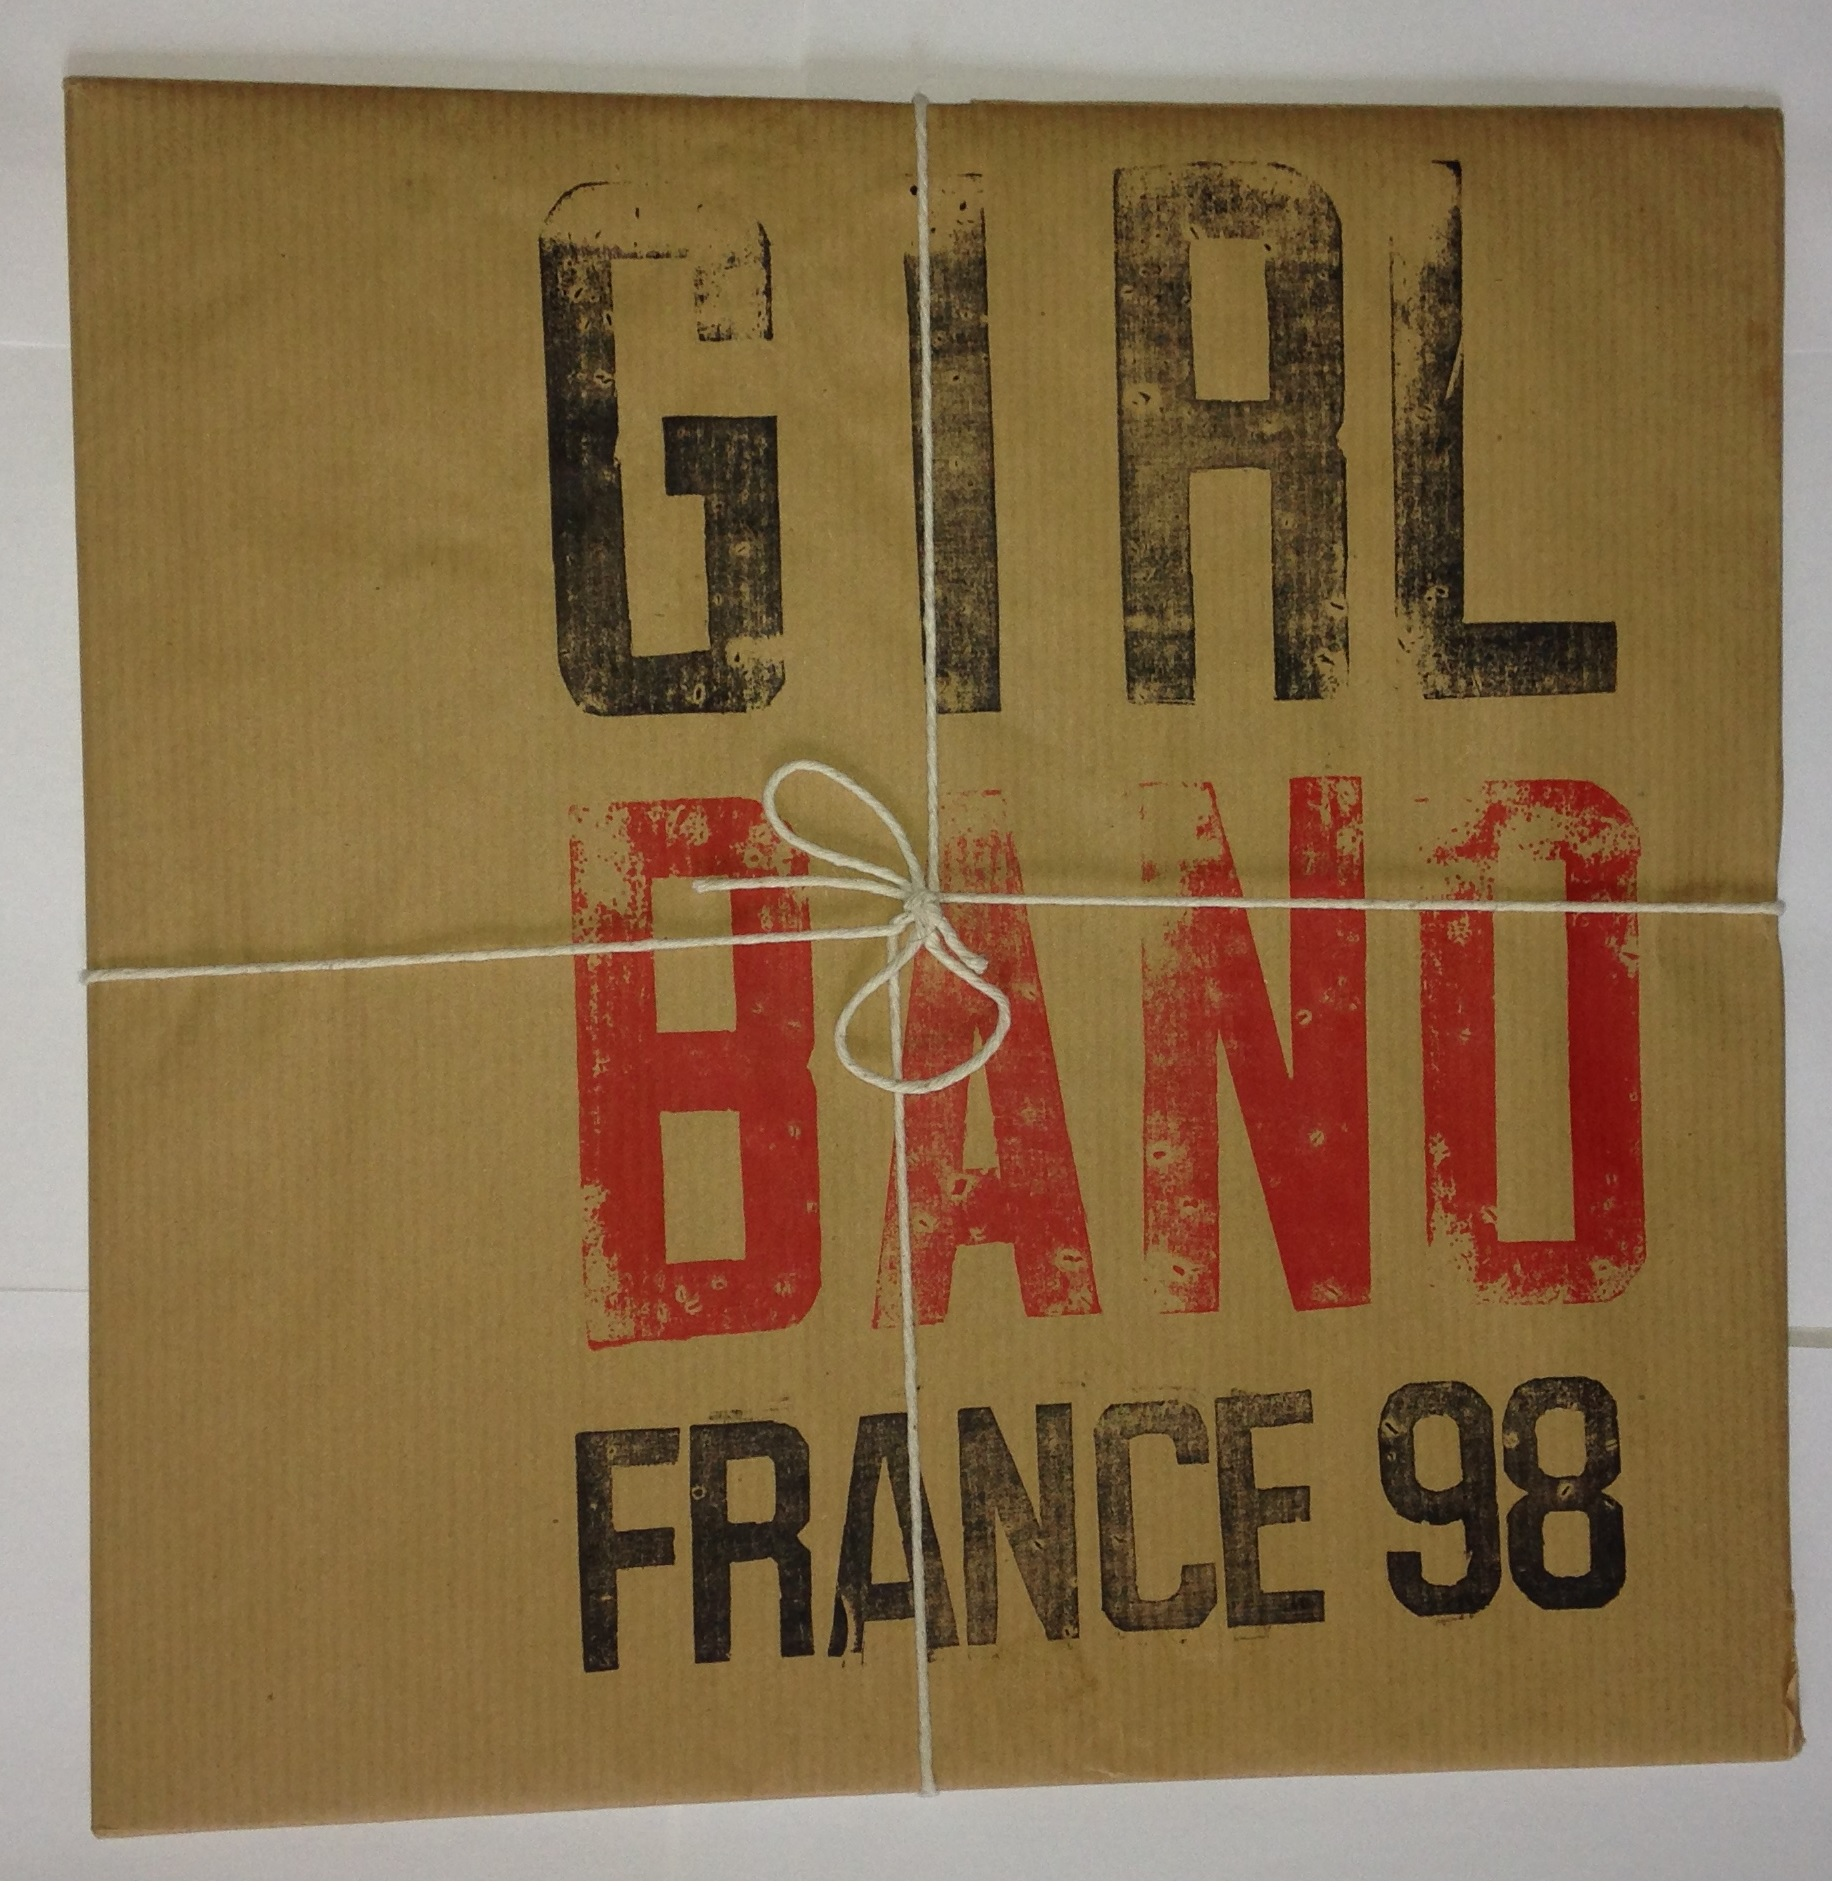 FRANCE 98 – [SOLD OUT]